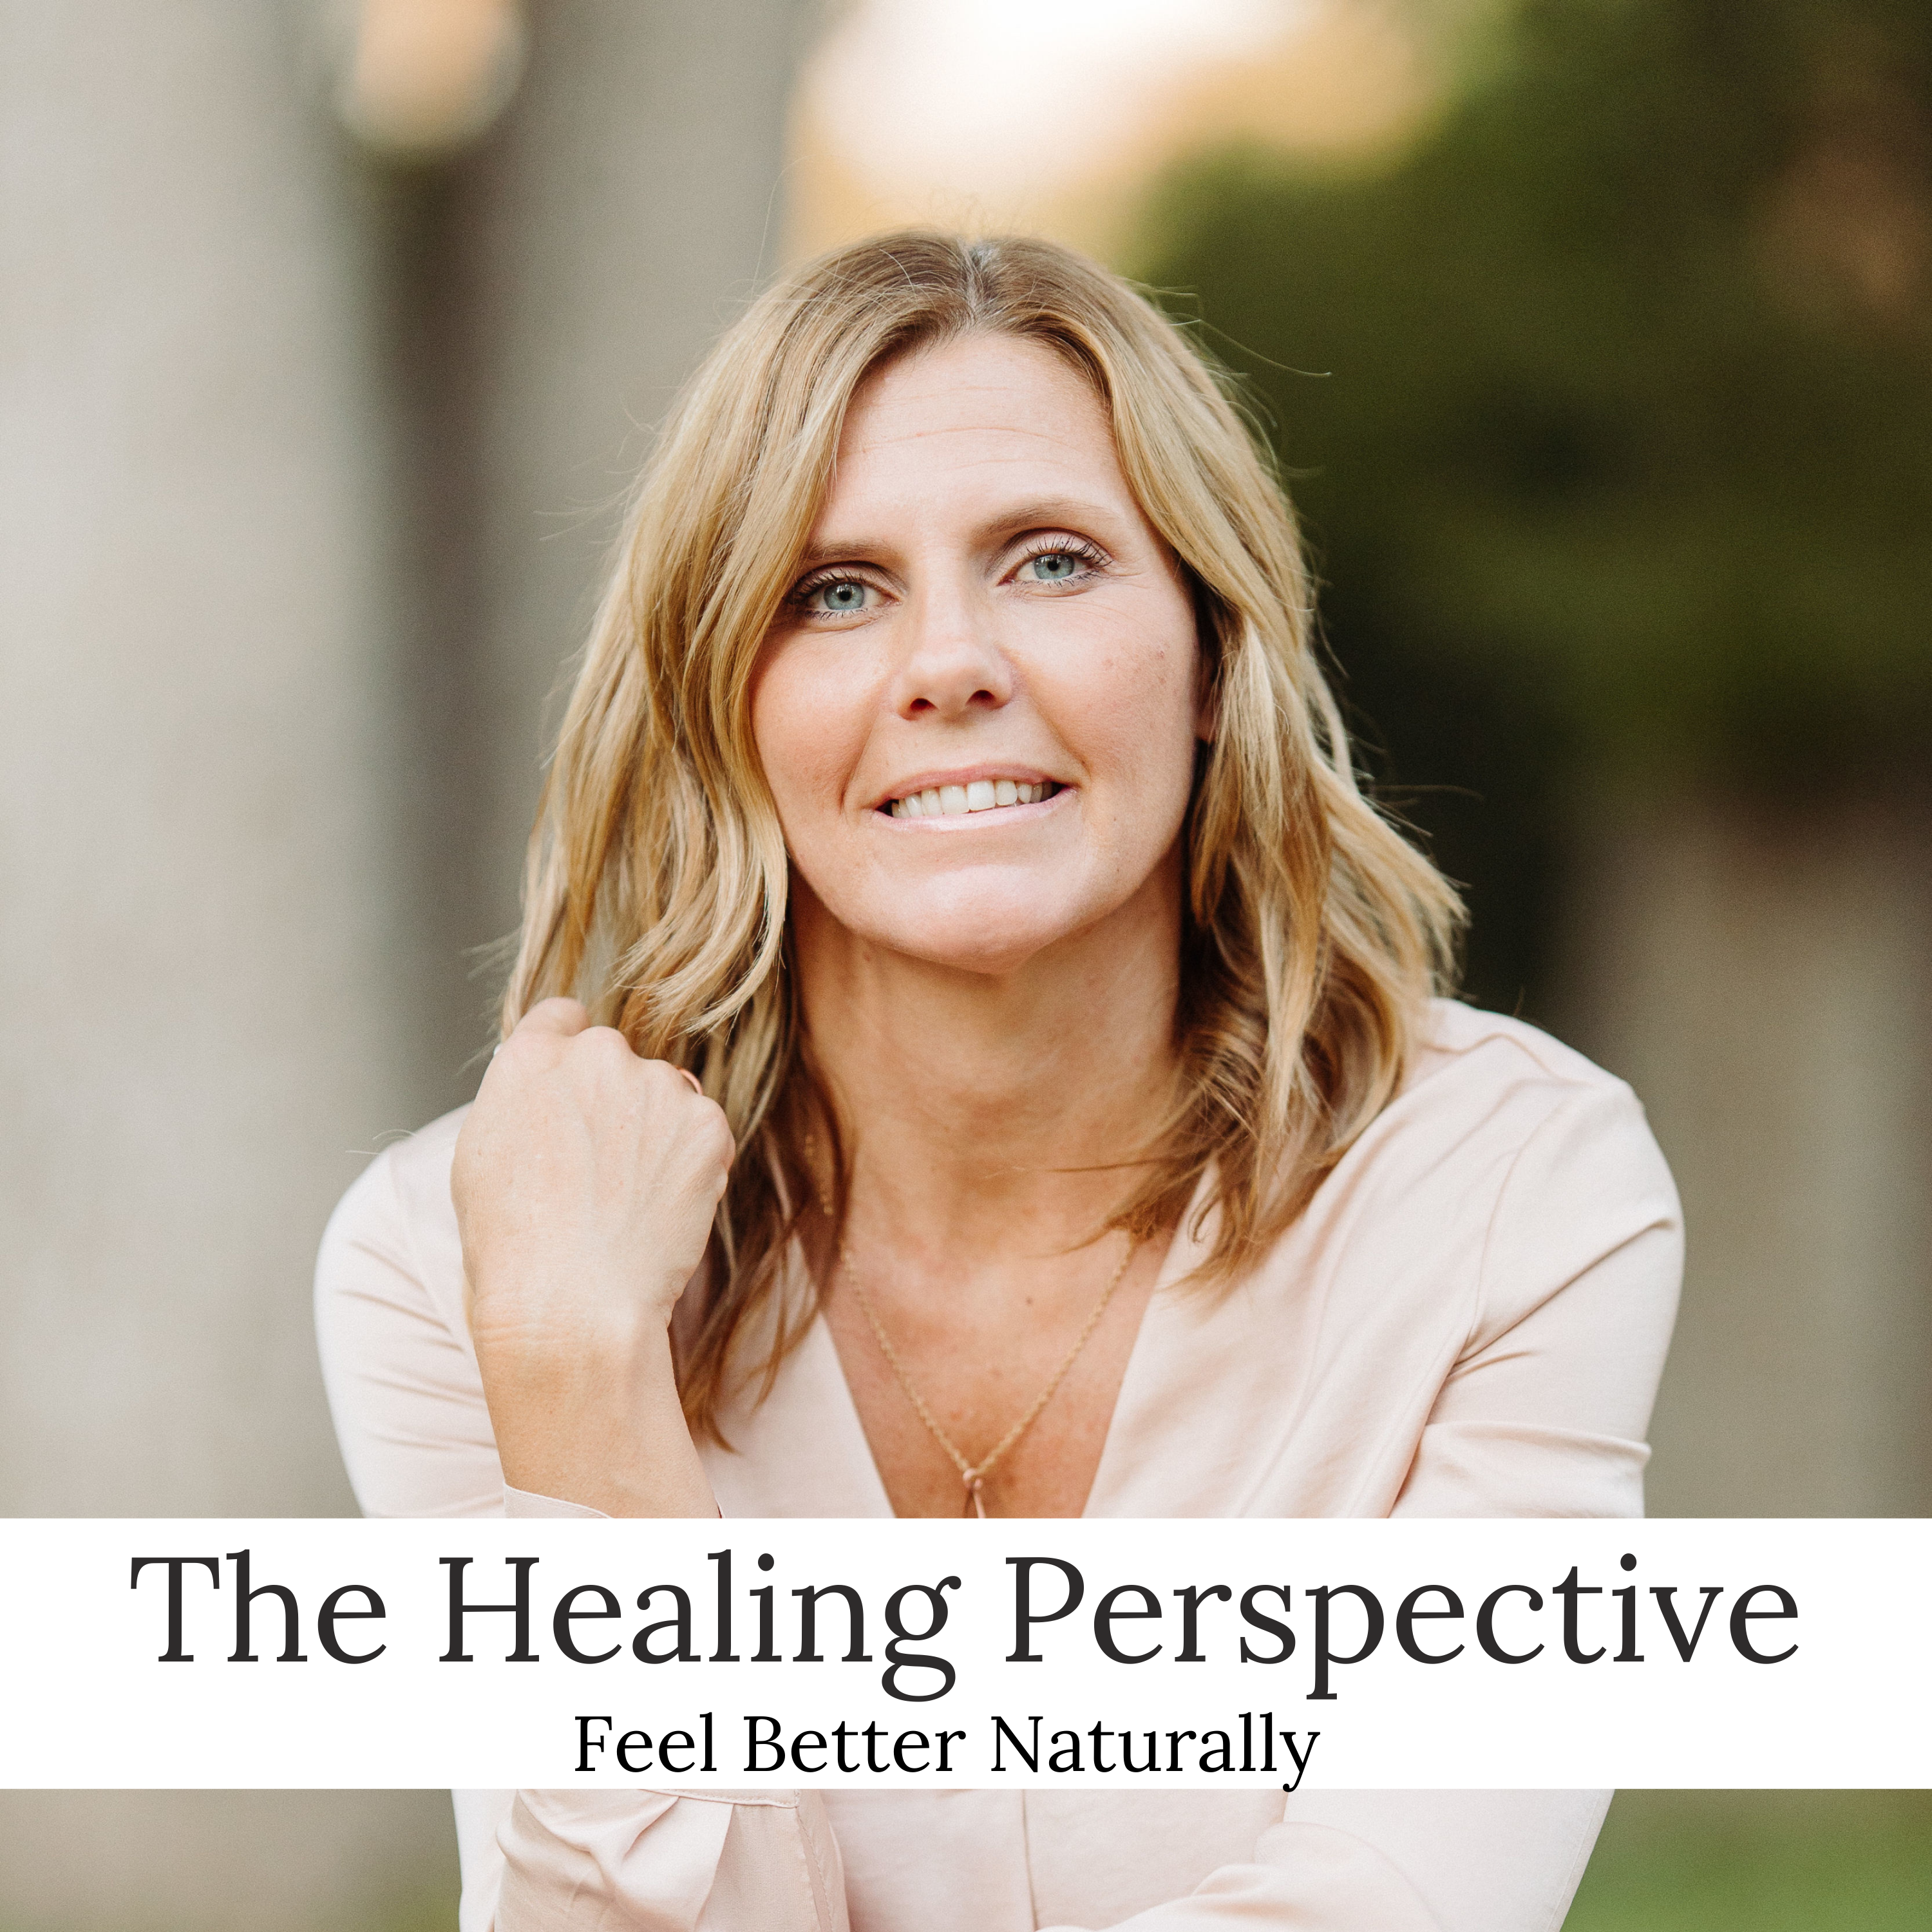 The Healing Perspective: Feel Better Naturally